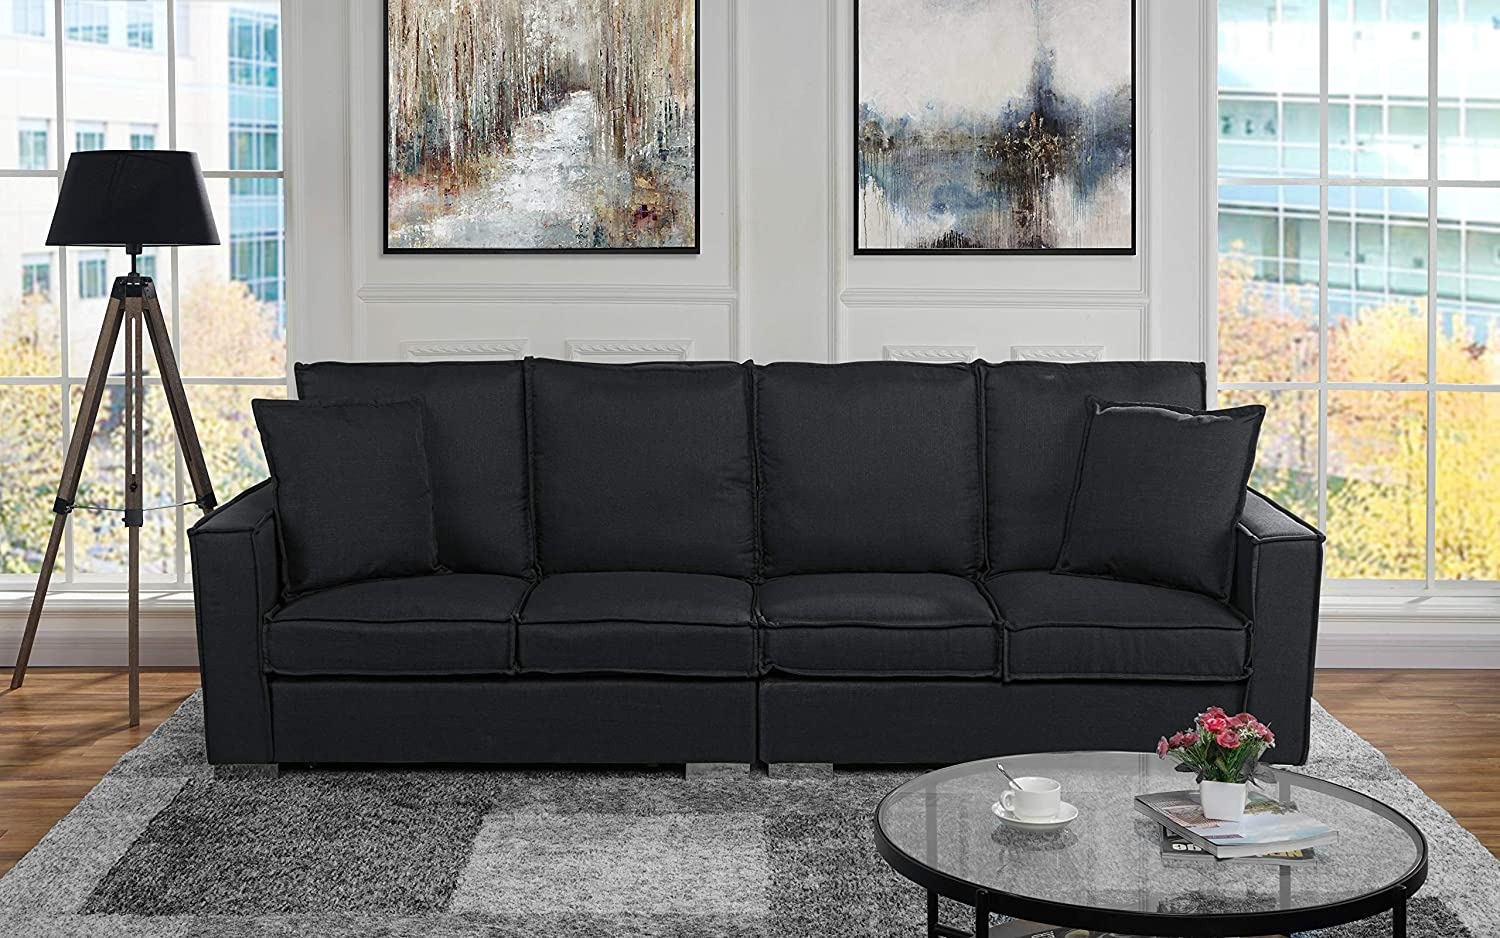 Extra Large Living Room Linen Fabric Sofa, 4 Seat Couch (Black)